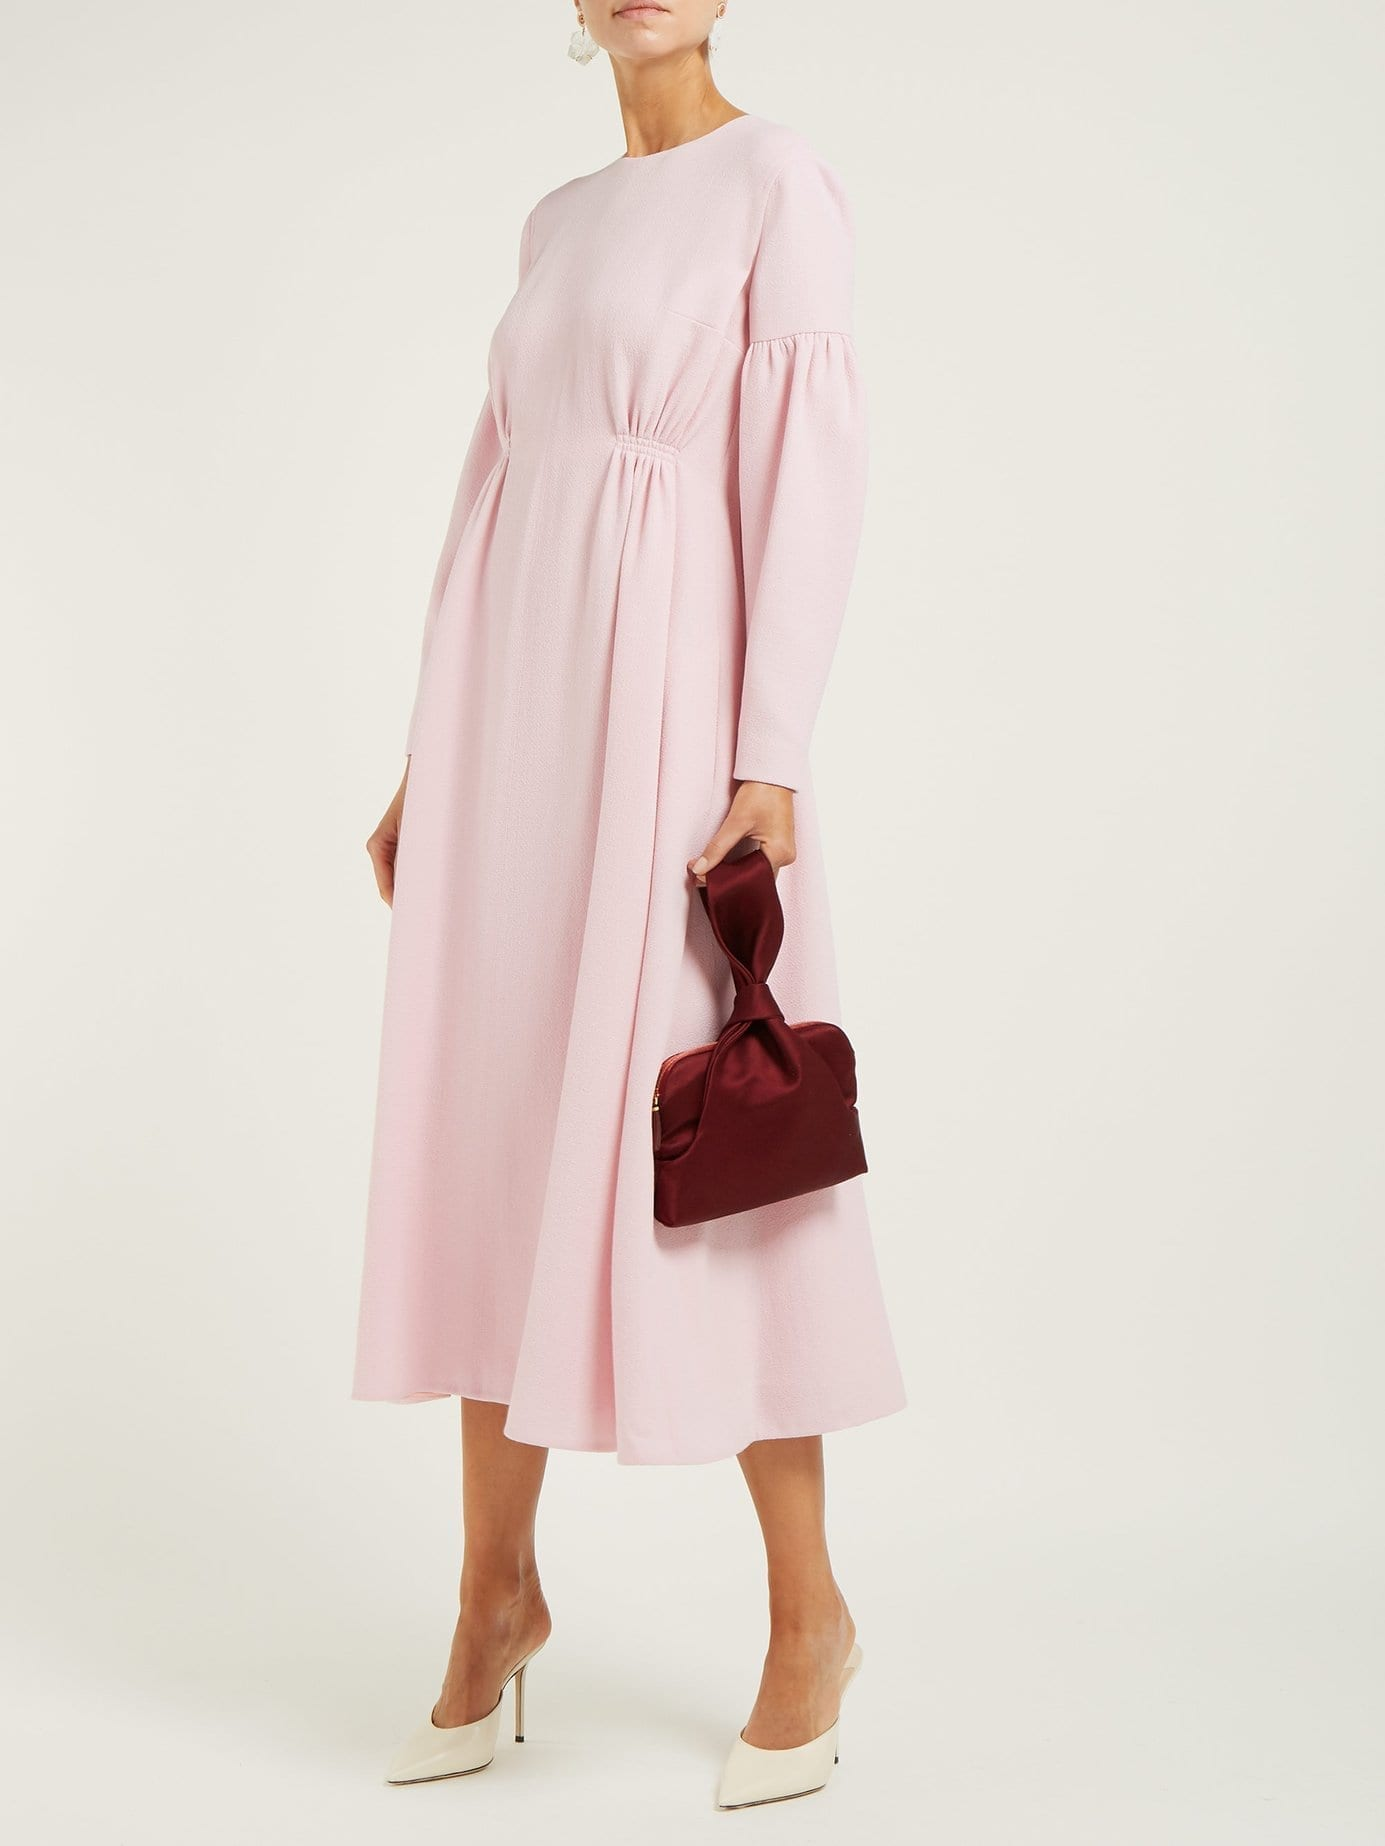 EMILIA WICKSTEAD Cecil Shirred Wool-crepe Midi Pink Dress